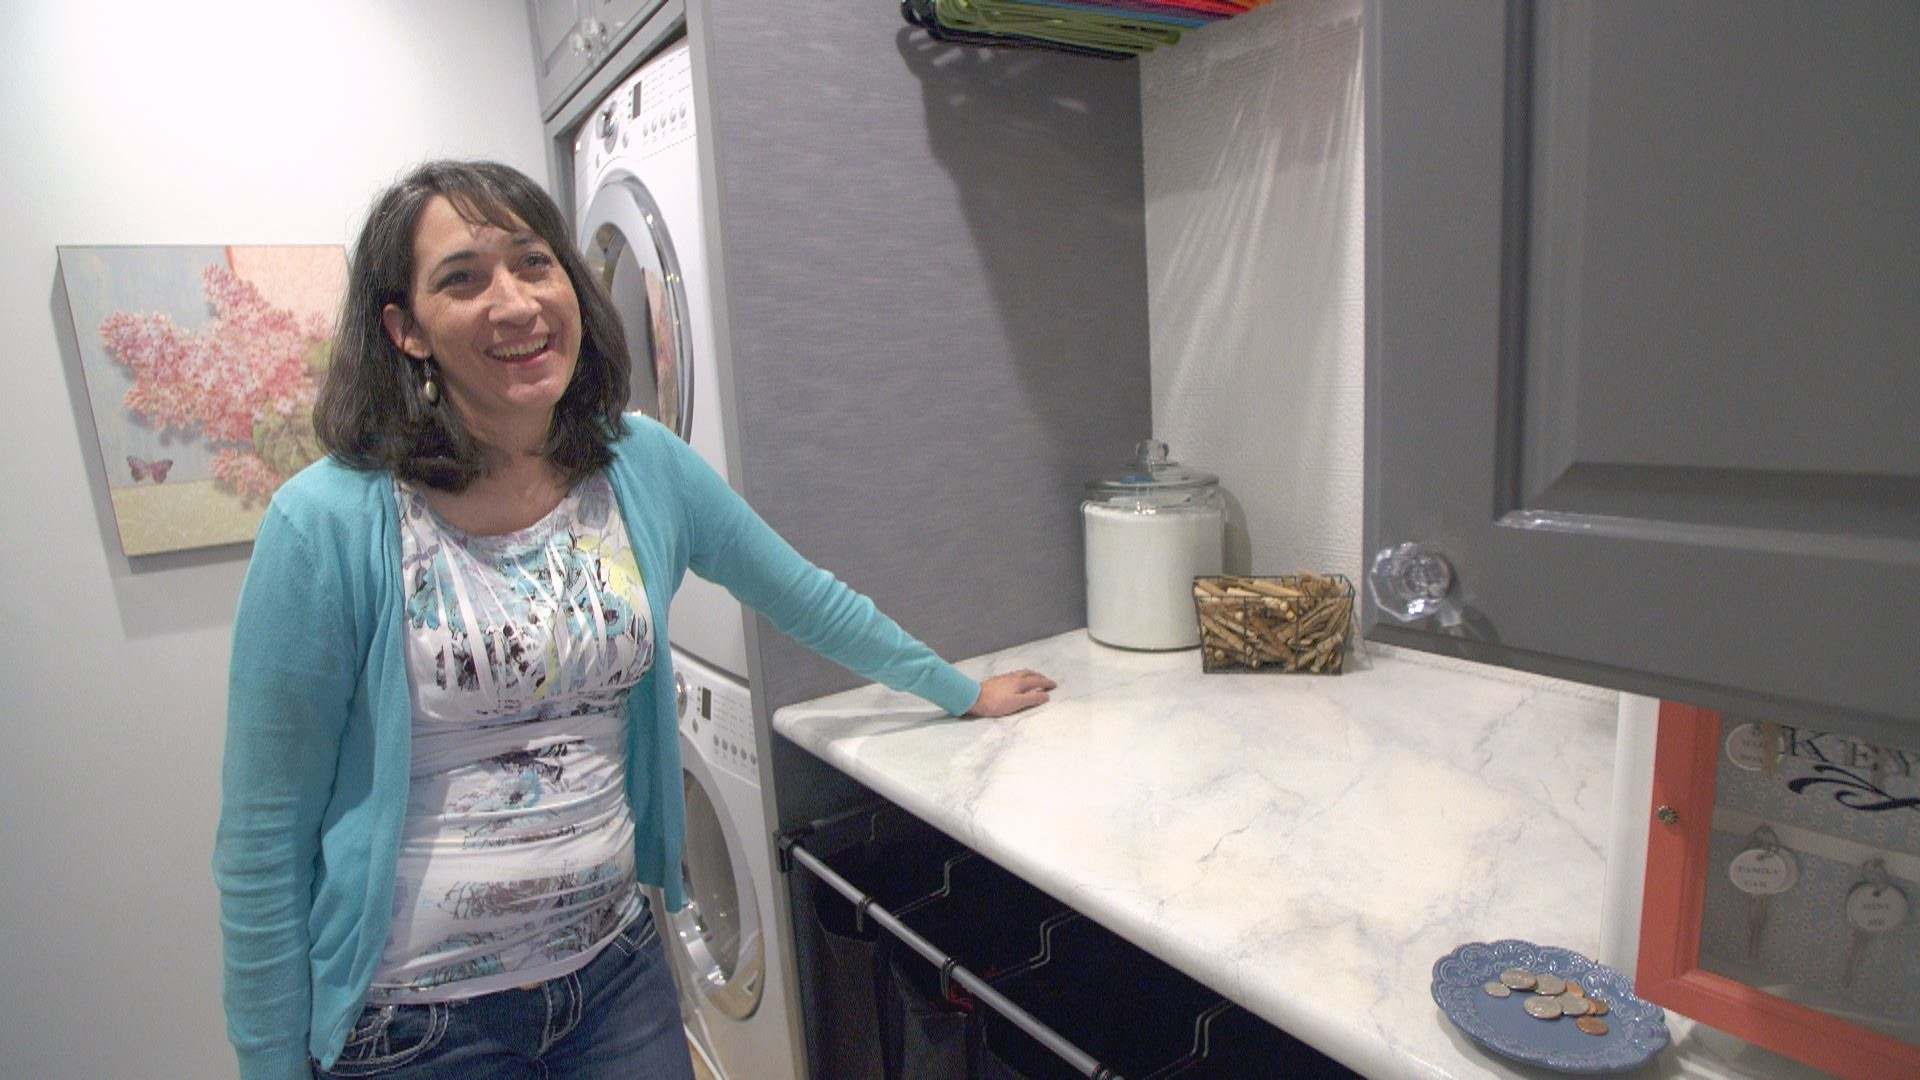 You Won't Believe What This Mother of 6 Did to Totally Rock Her Laundry Space